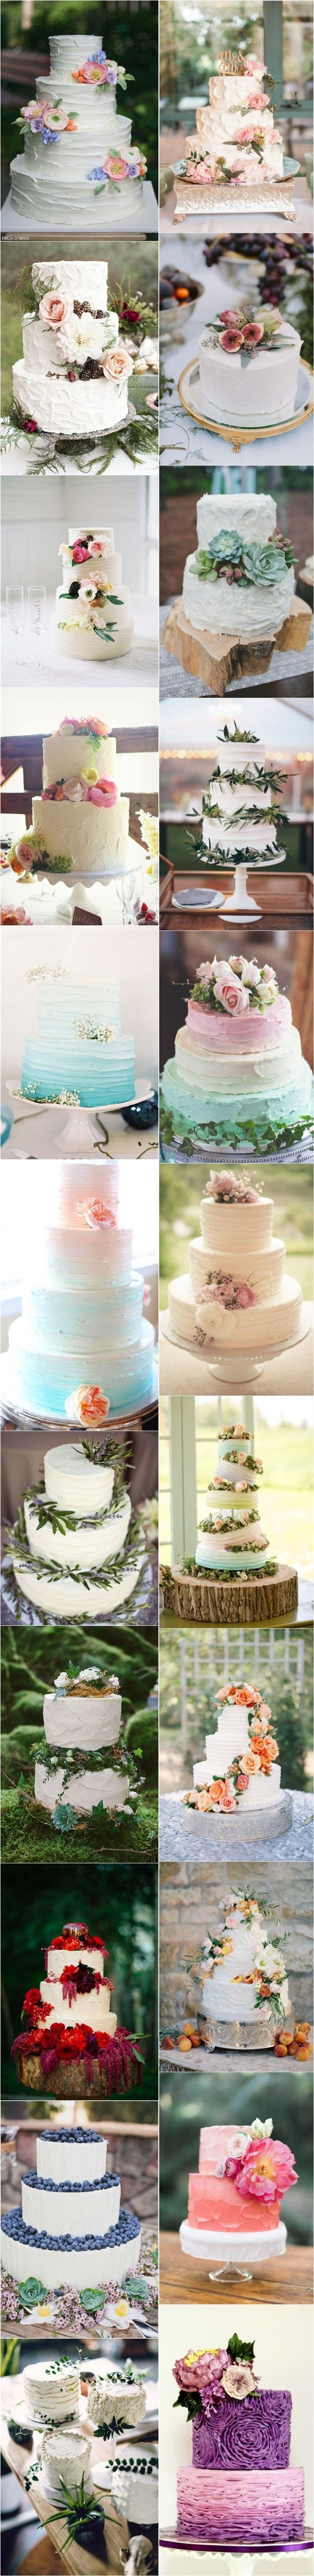 buttercream wedding cakes weud almost kill for with tutorial